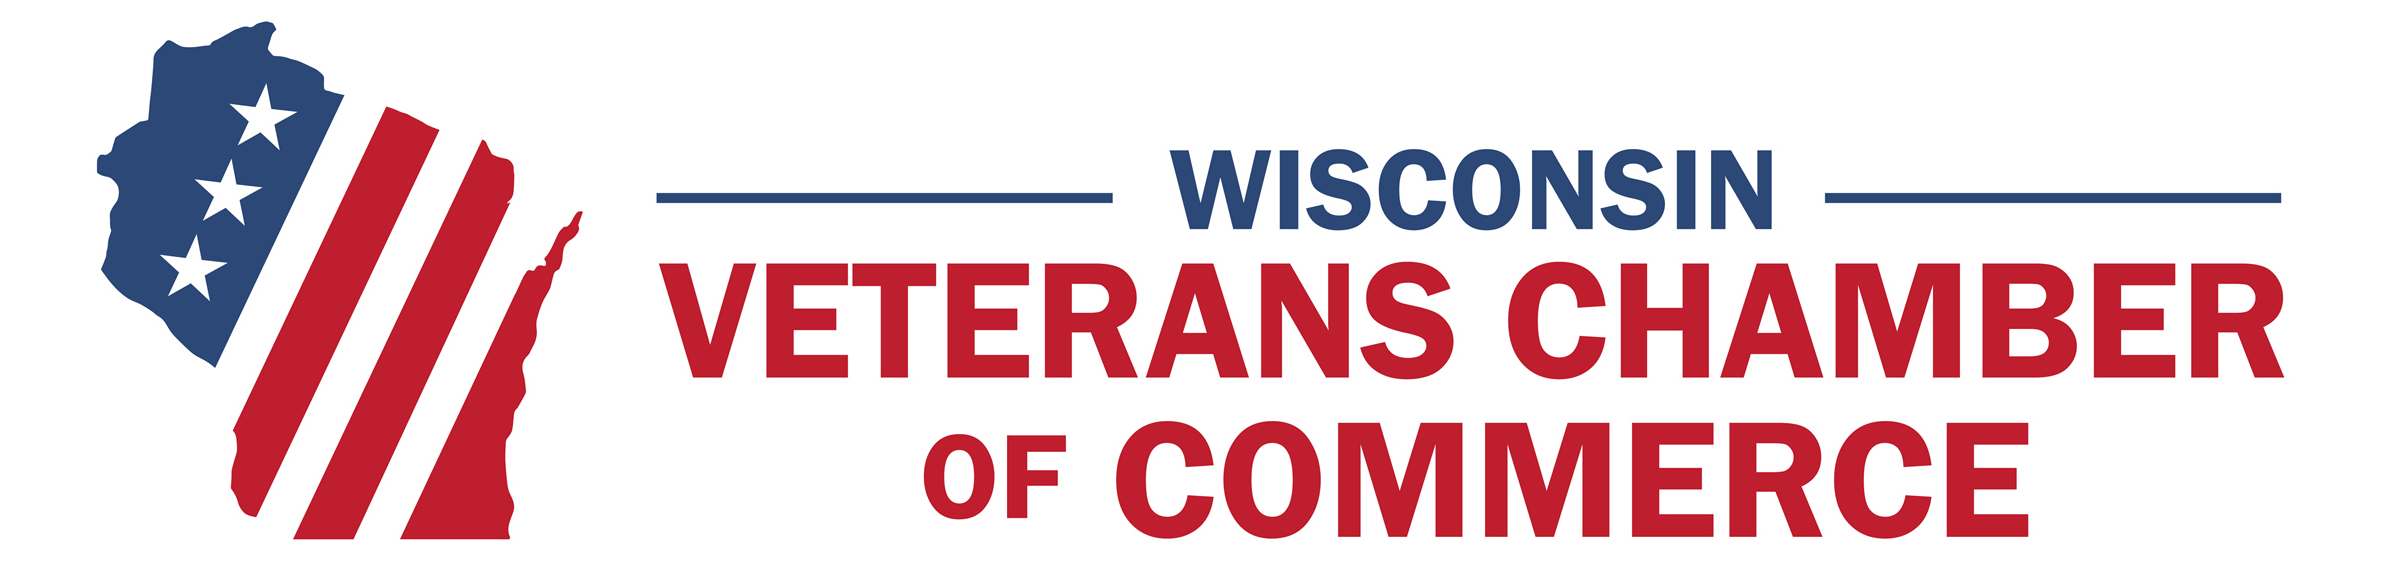 WI Veterans Chamber leads community coalition to host Wisconsin Veterans Day Parade